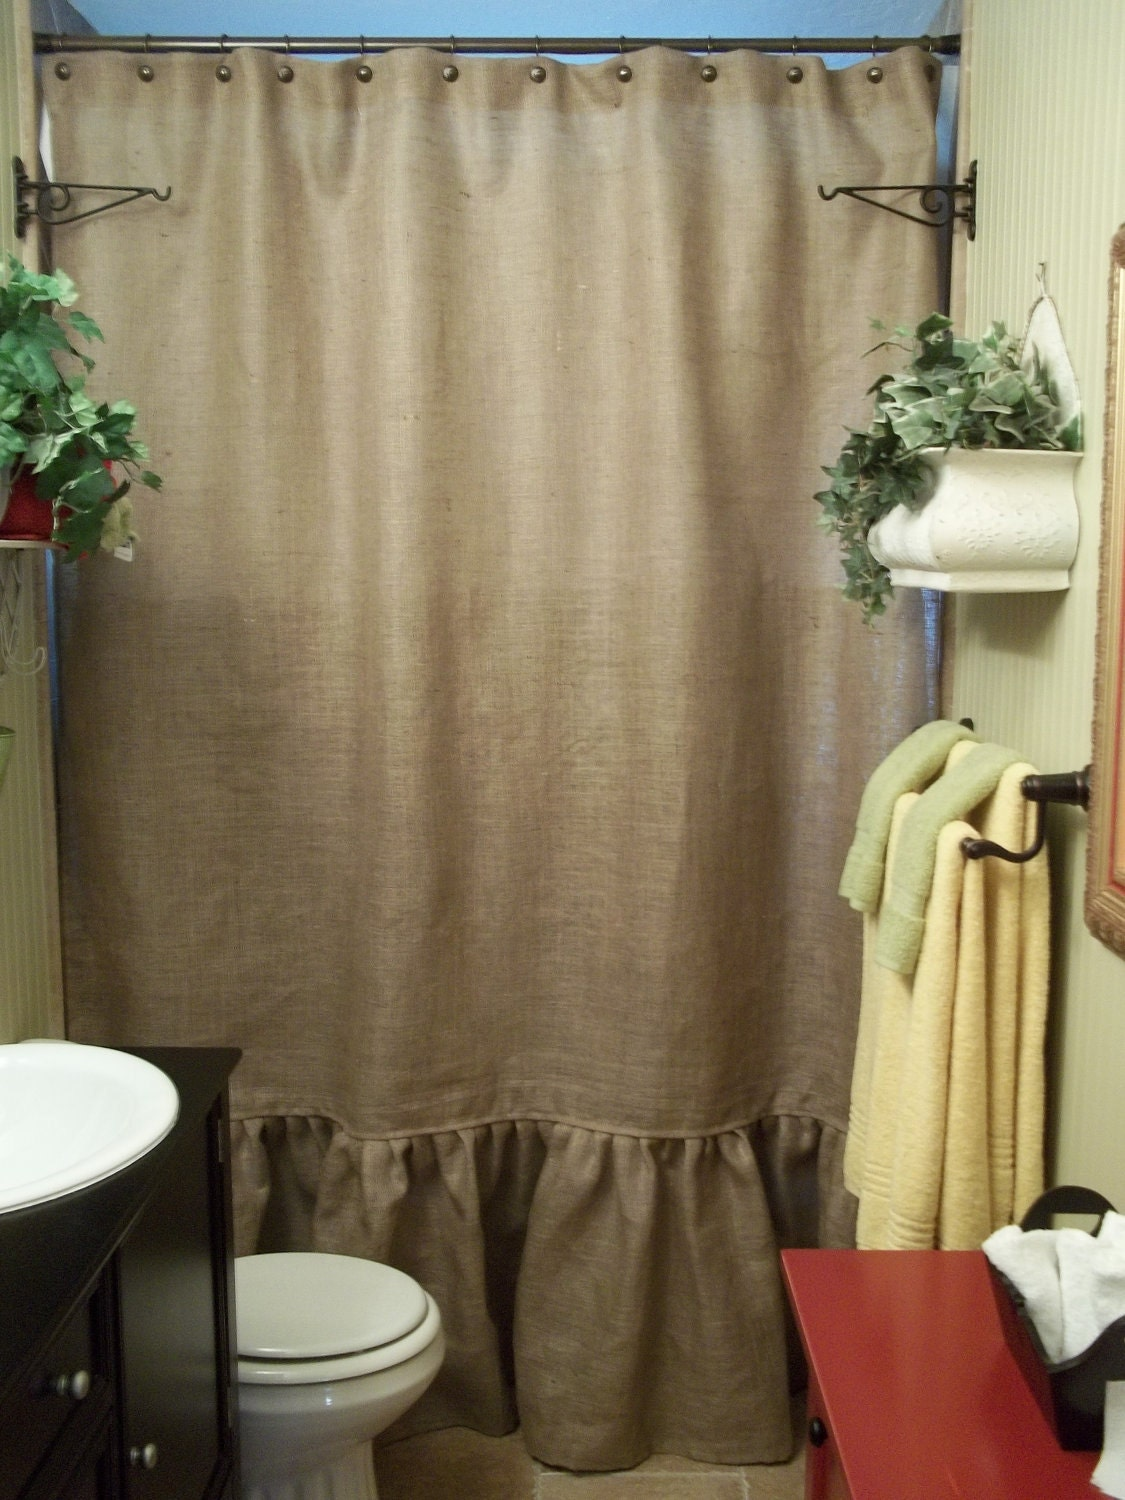 Ruffled Bottom Burlap Shower Curtain by SimplyFrenchMarket on Etsy